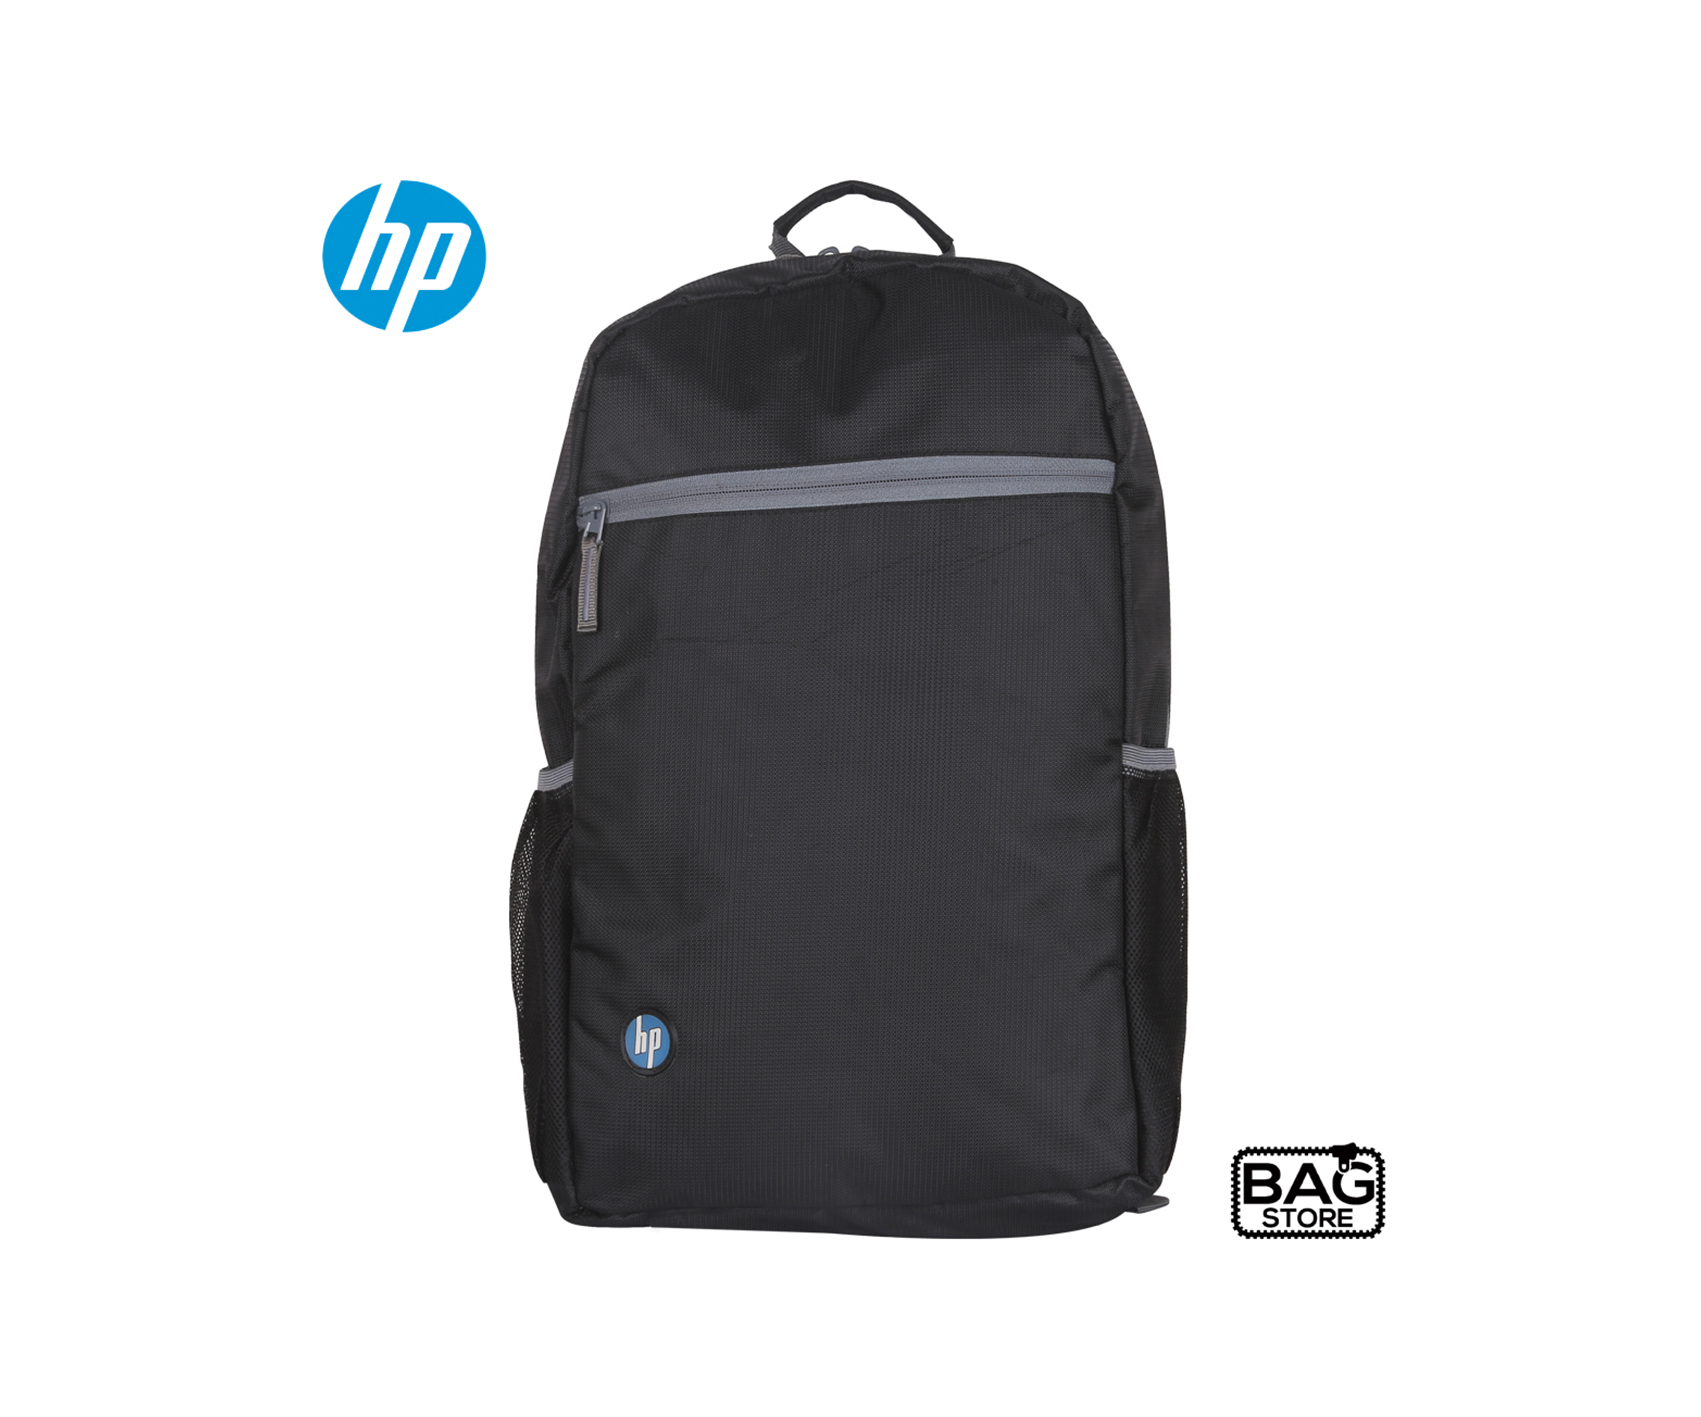 HP OS Agile 15.6″ Laptop Backpack